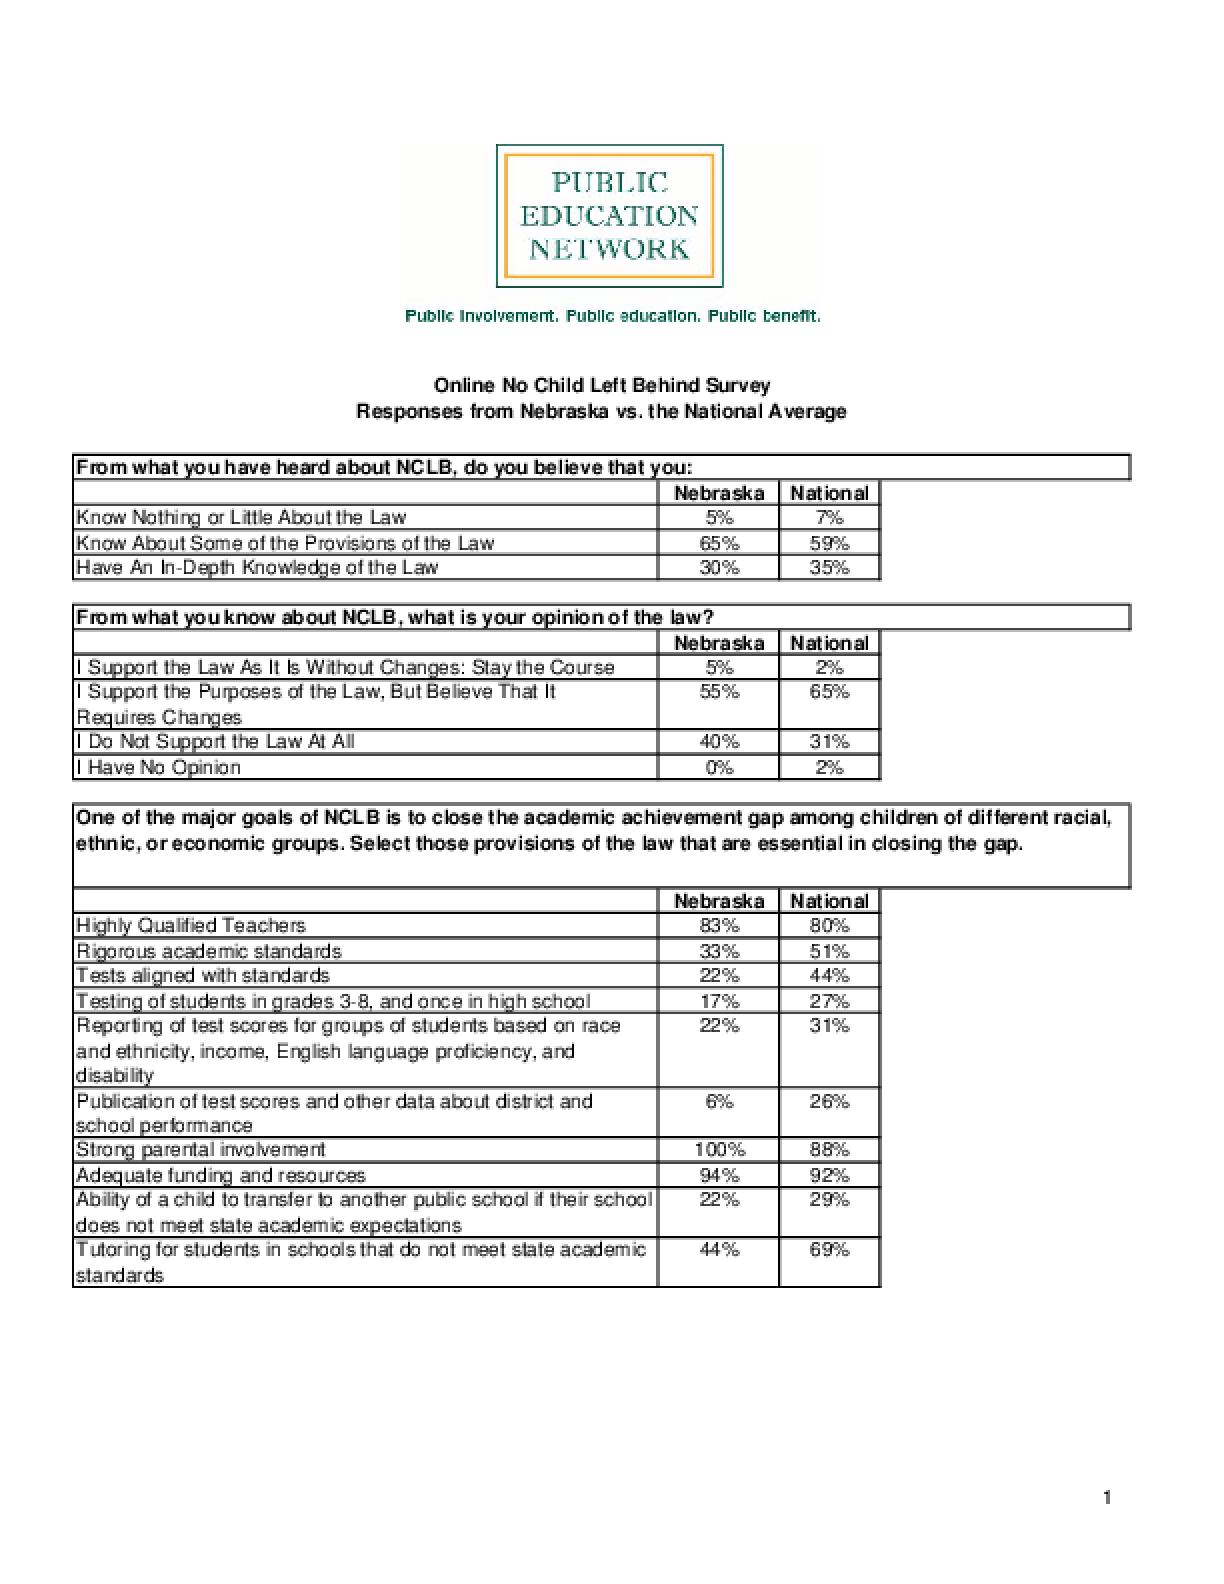 Online No Child Left Behind Survey Responses from Nebraska vs. the National Average